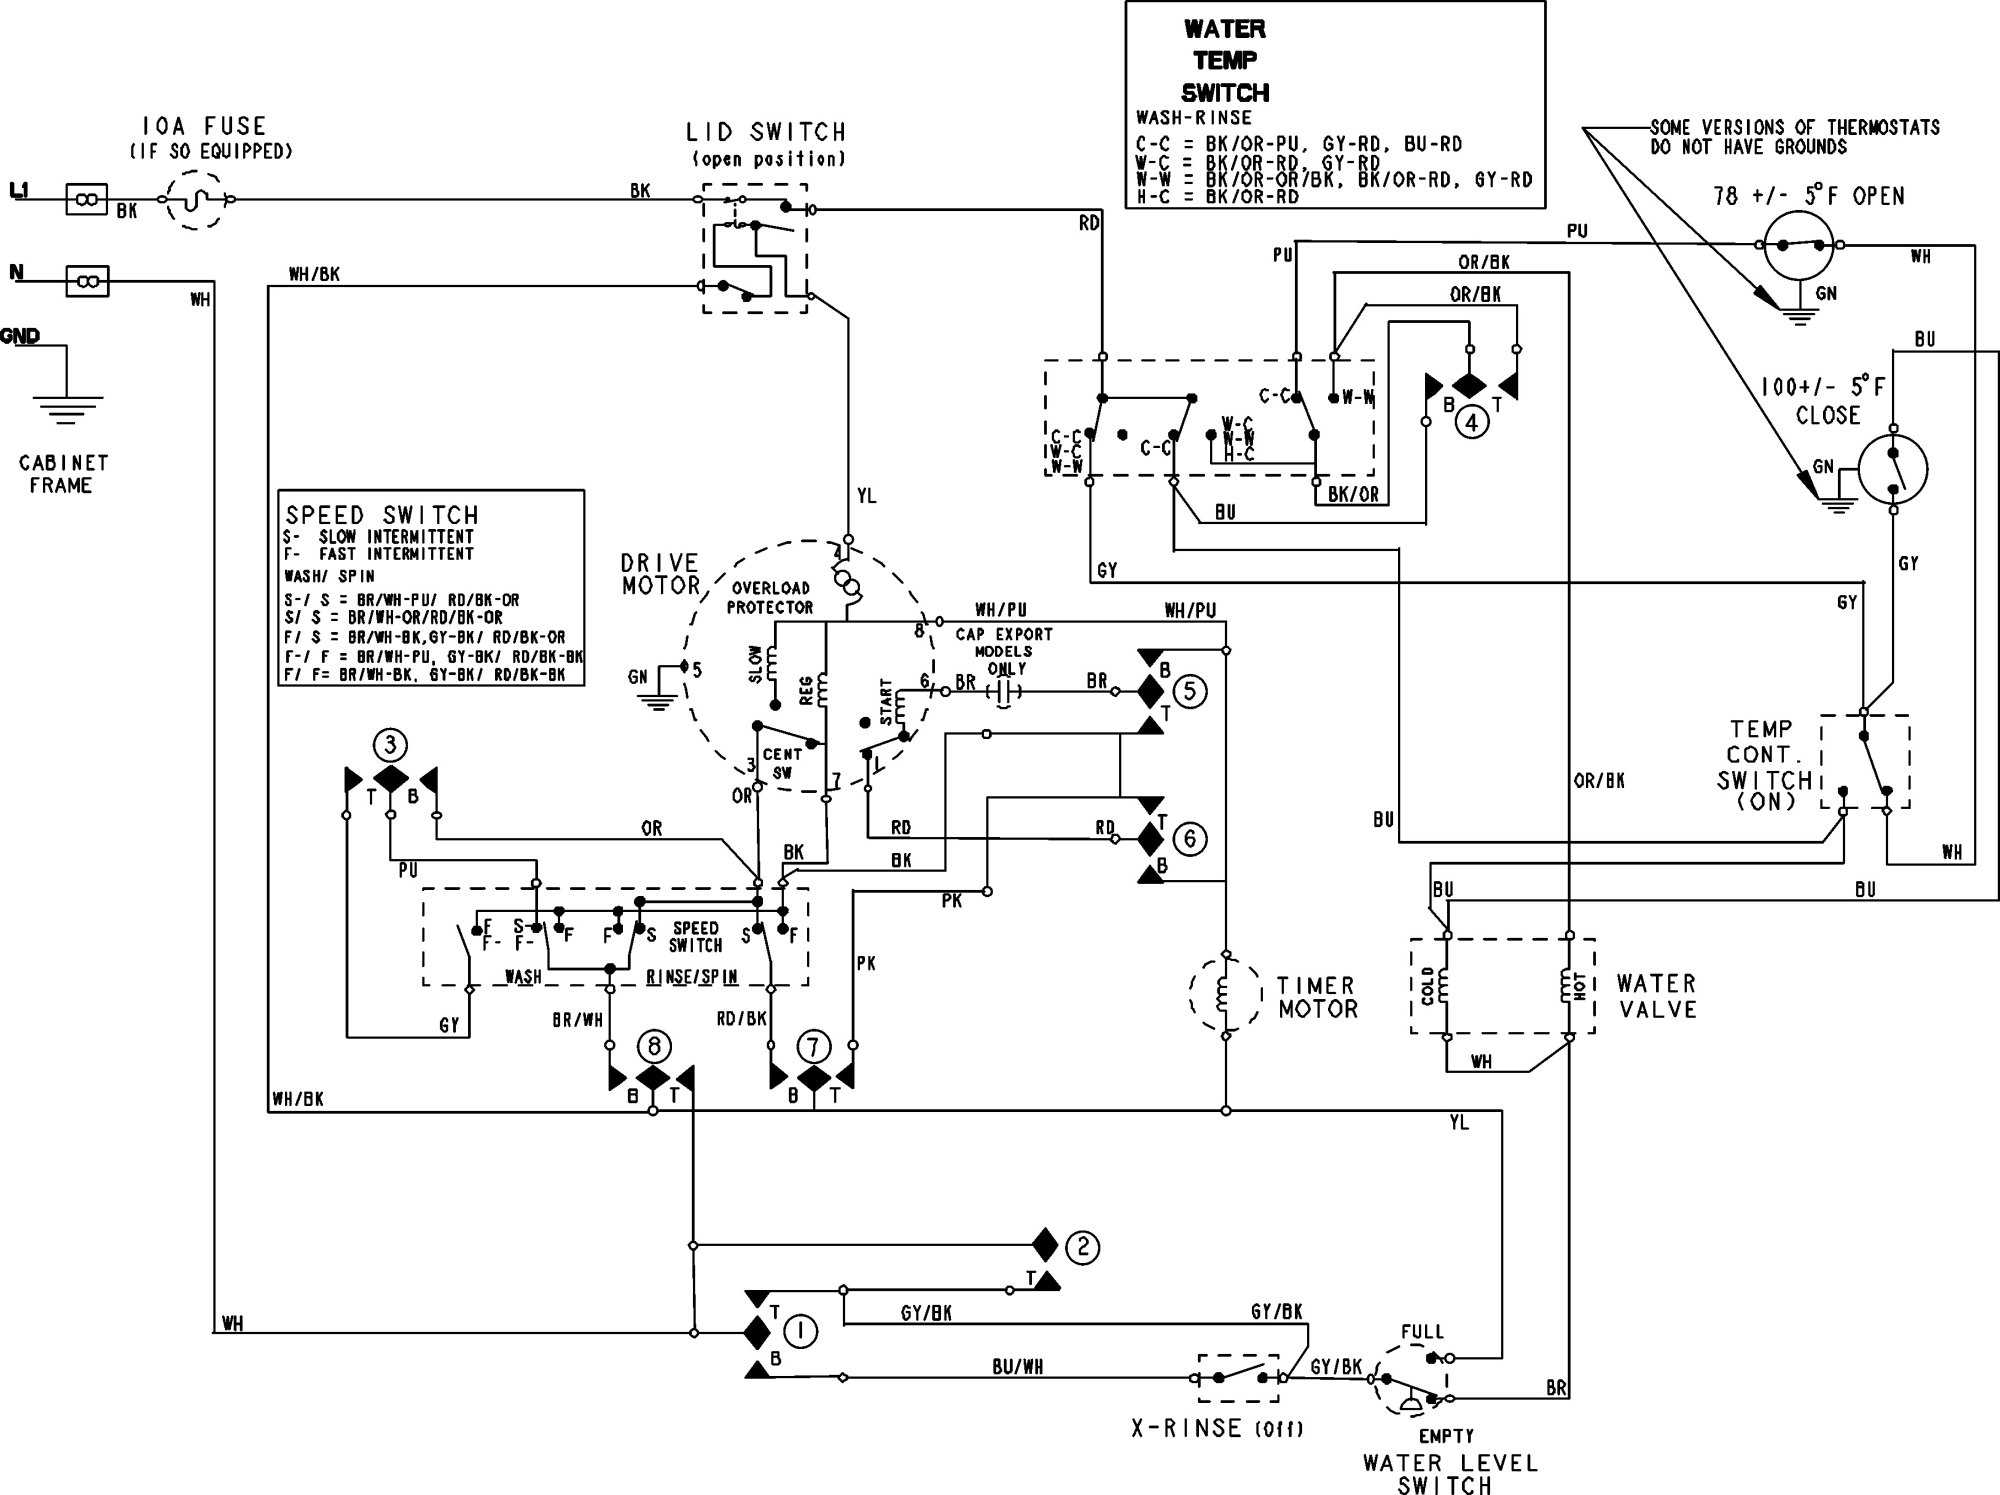 hight resolution of wiring diagram maytag dryer wiring diagram schematic maytag dryer wiring diagram wiring diagram database wiring diagram